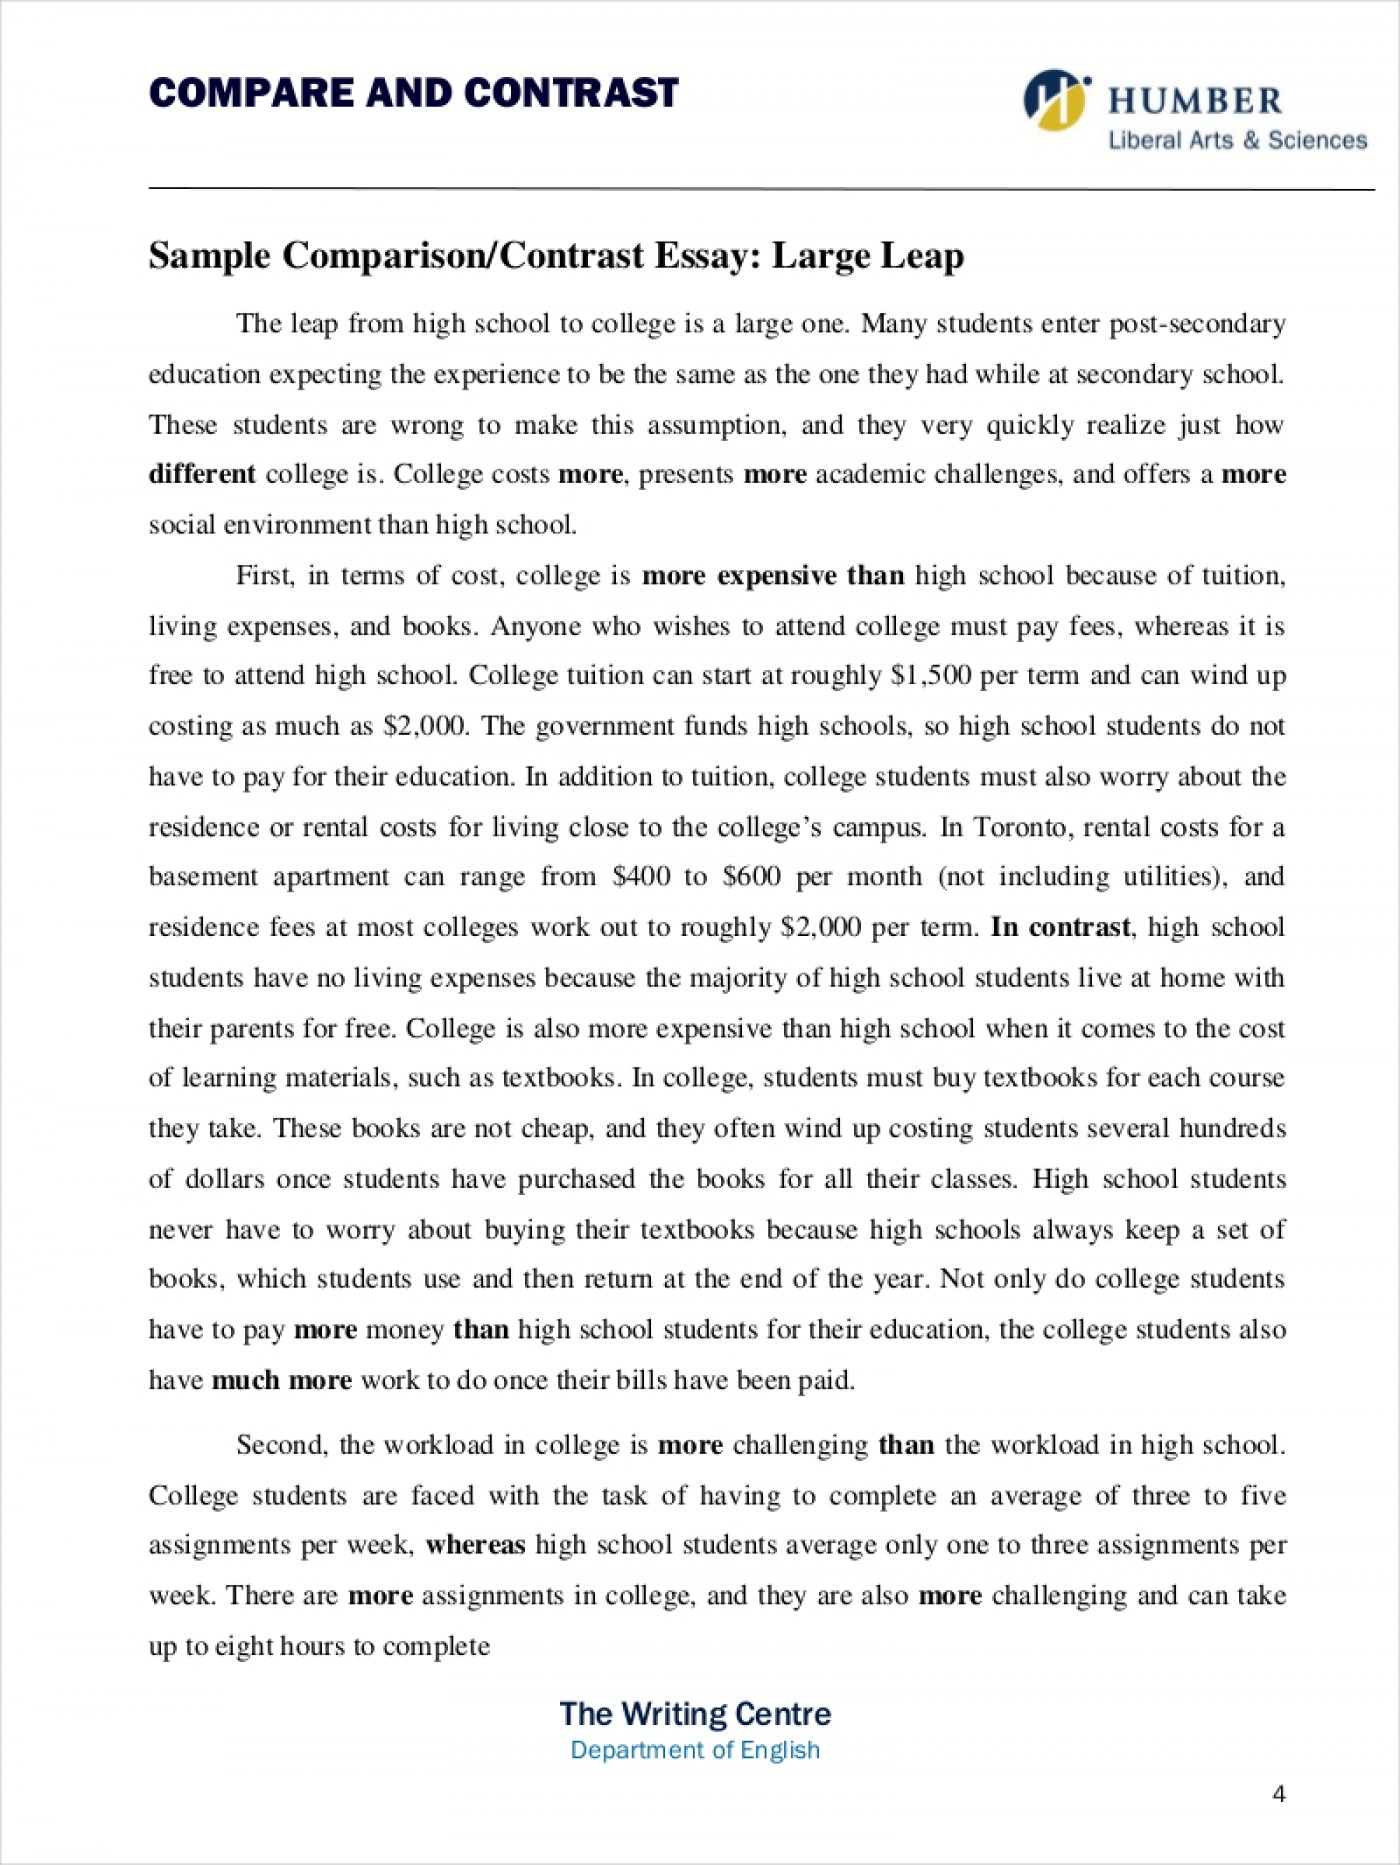 006 Compare And Contrast Essay Examples Comparative Samples Free Pdf Format Download Throughout Comparison Thesis Coles Thecolossus Co Within Ex 5th Grade 4th 6th 3rd Magnificent Topics 1400